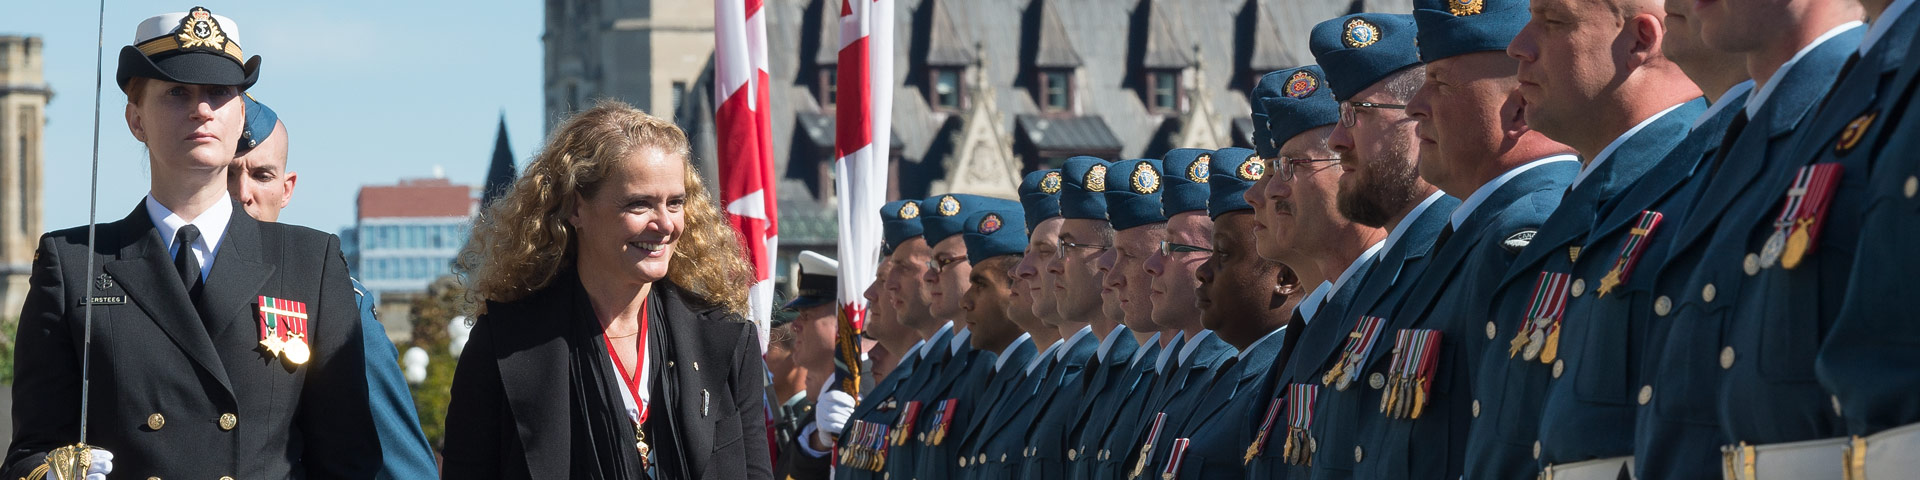 The Governor General Of Canada Her Excellency The Right Honourable